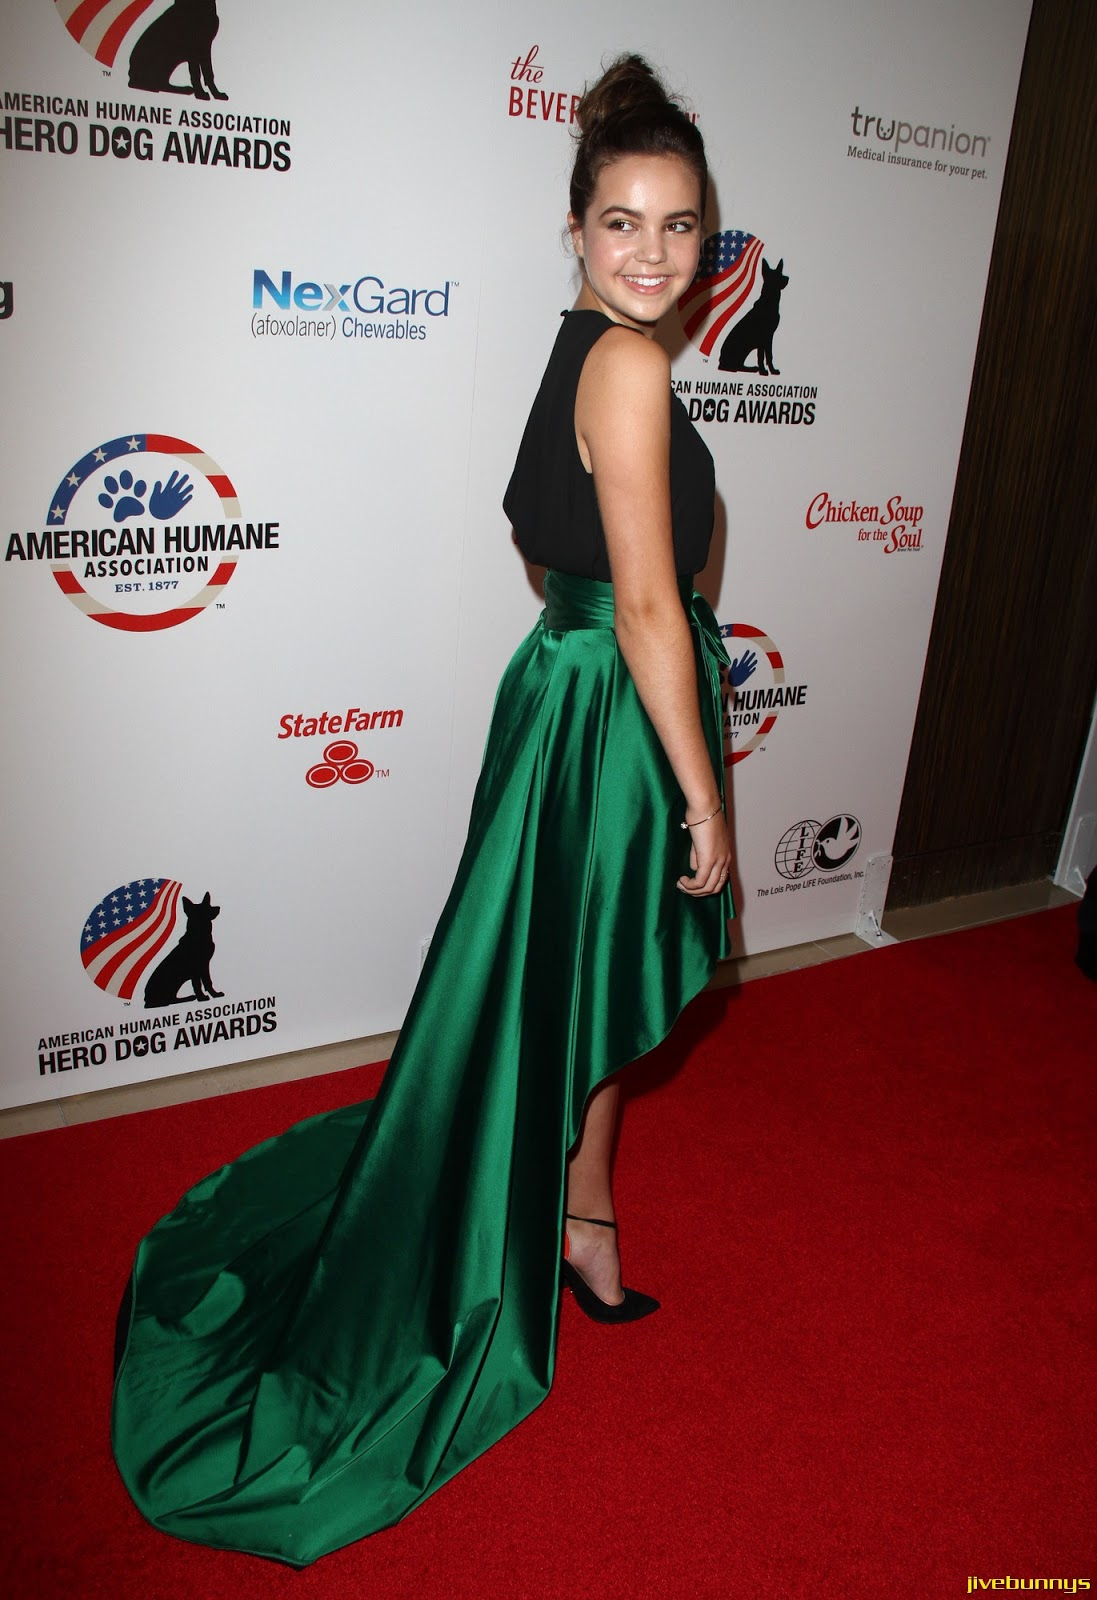 Bailee Madison - 4th annual Hero Dog Awards in Beverly Hills 09/27/14